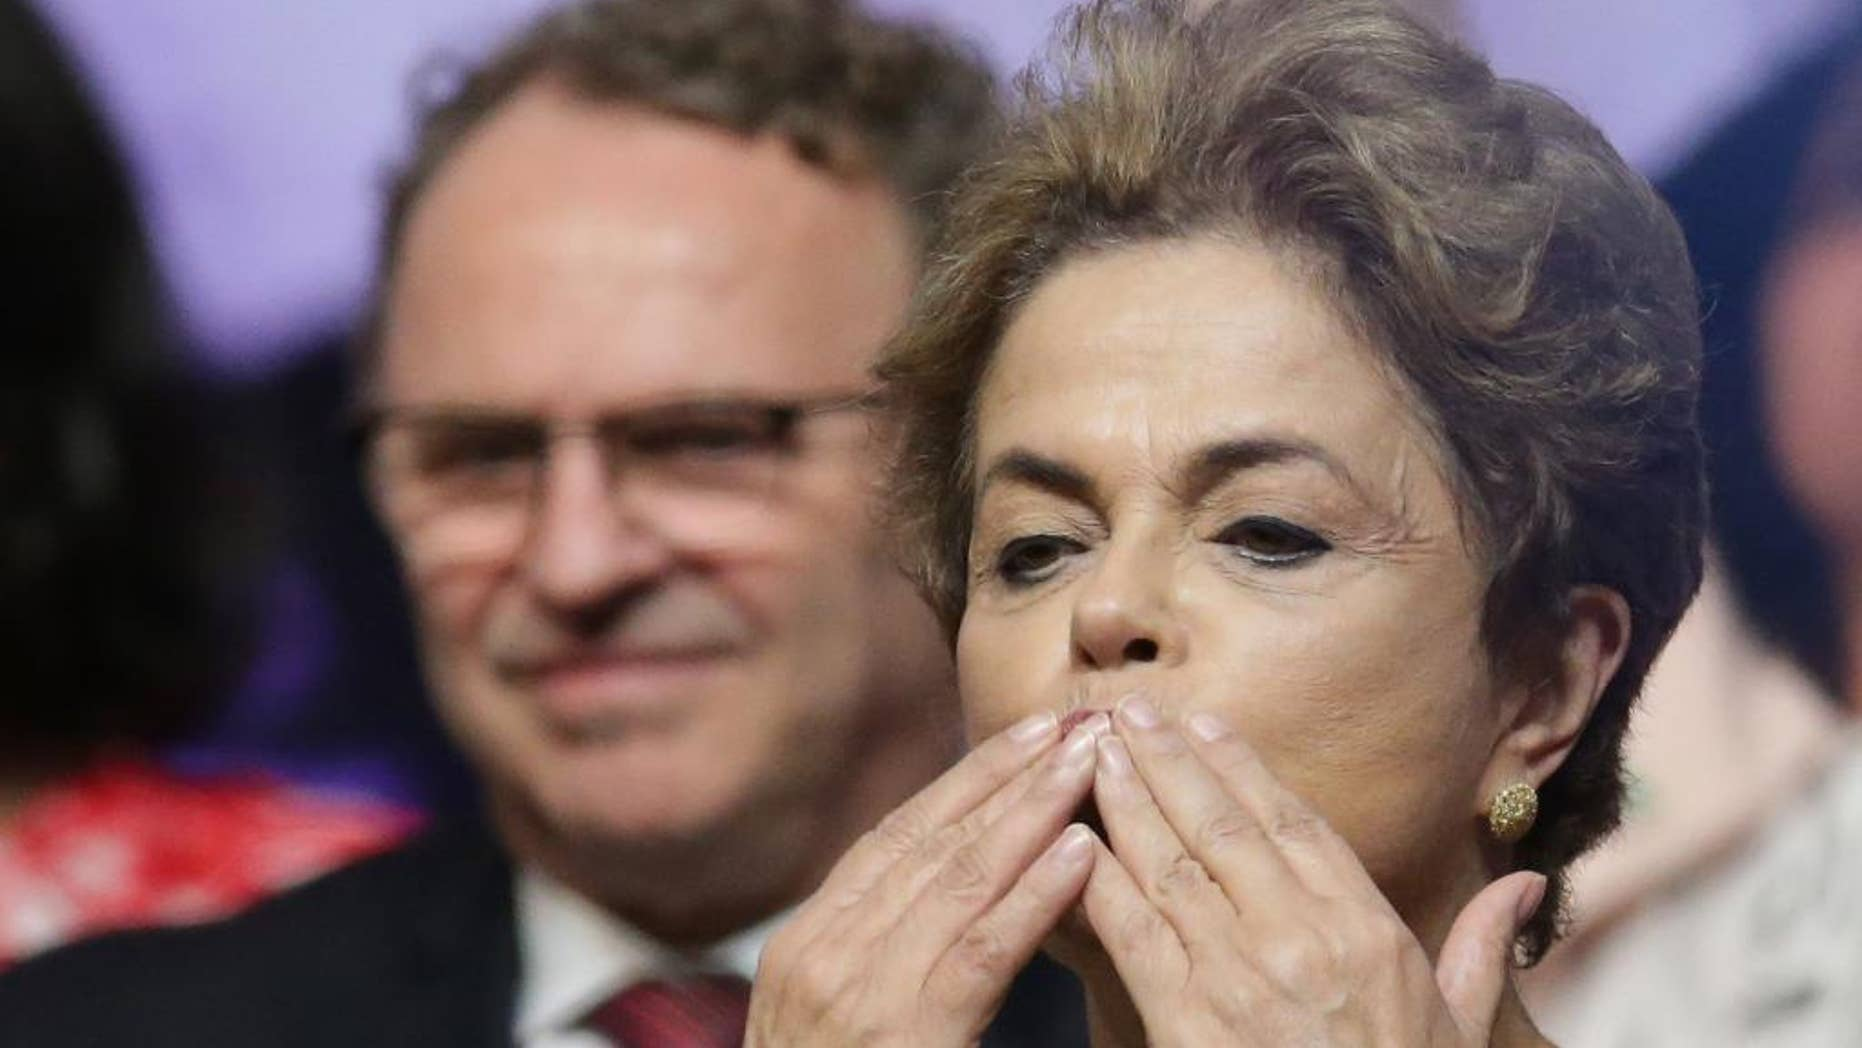 Brazil's President Dilma Rousseff blows kisses during the opening of the National Conference of Women, in Brasilia, Brazil, Tuesday, May 10, 2016. The impeachment proceedings against Rousseff took another hairpin turn Tuesday after the acting speaker of Congress' lower house Waldir Maranhao put the impeachment process back on track a day after he sparked chaos and sowed further discord among Brazil's fractious political class by annulling an April 17 vote by the Chamber of Deputies for impeachment. (AP Photo/Eraldo Peres)